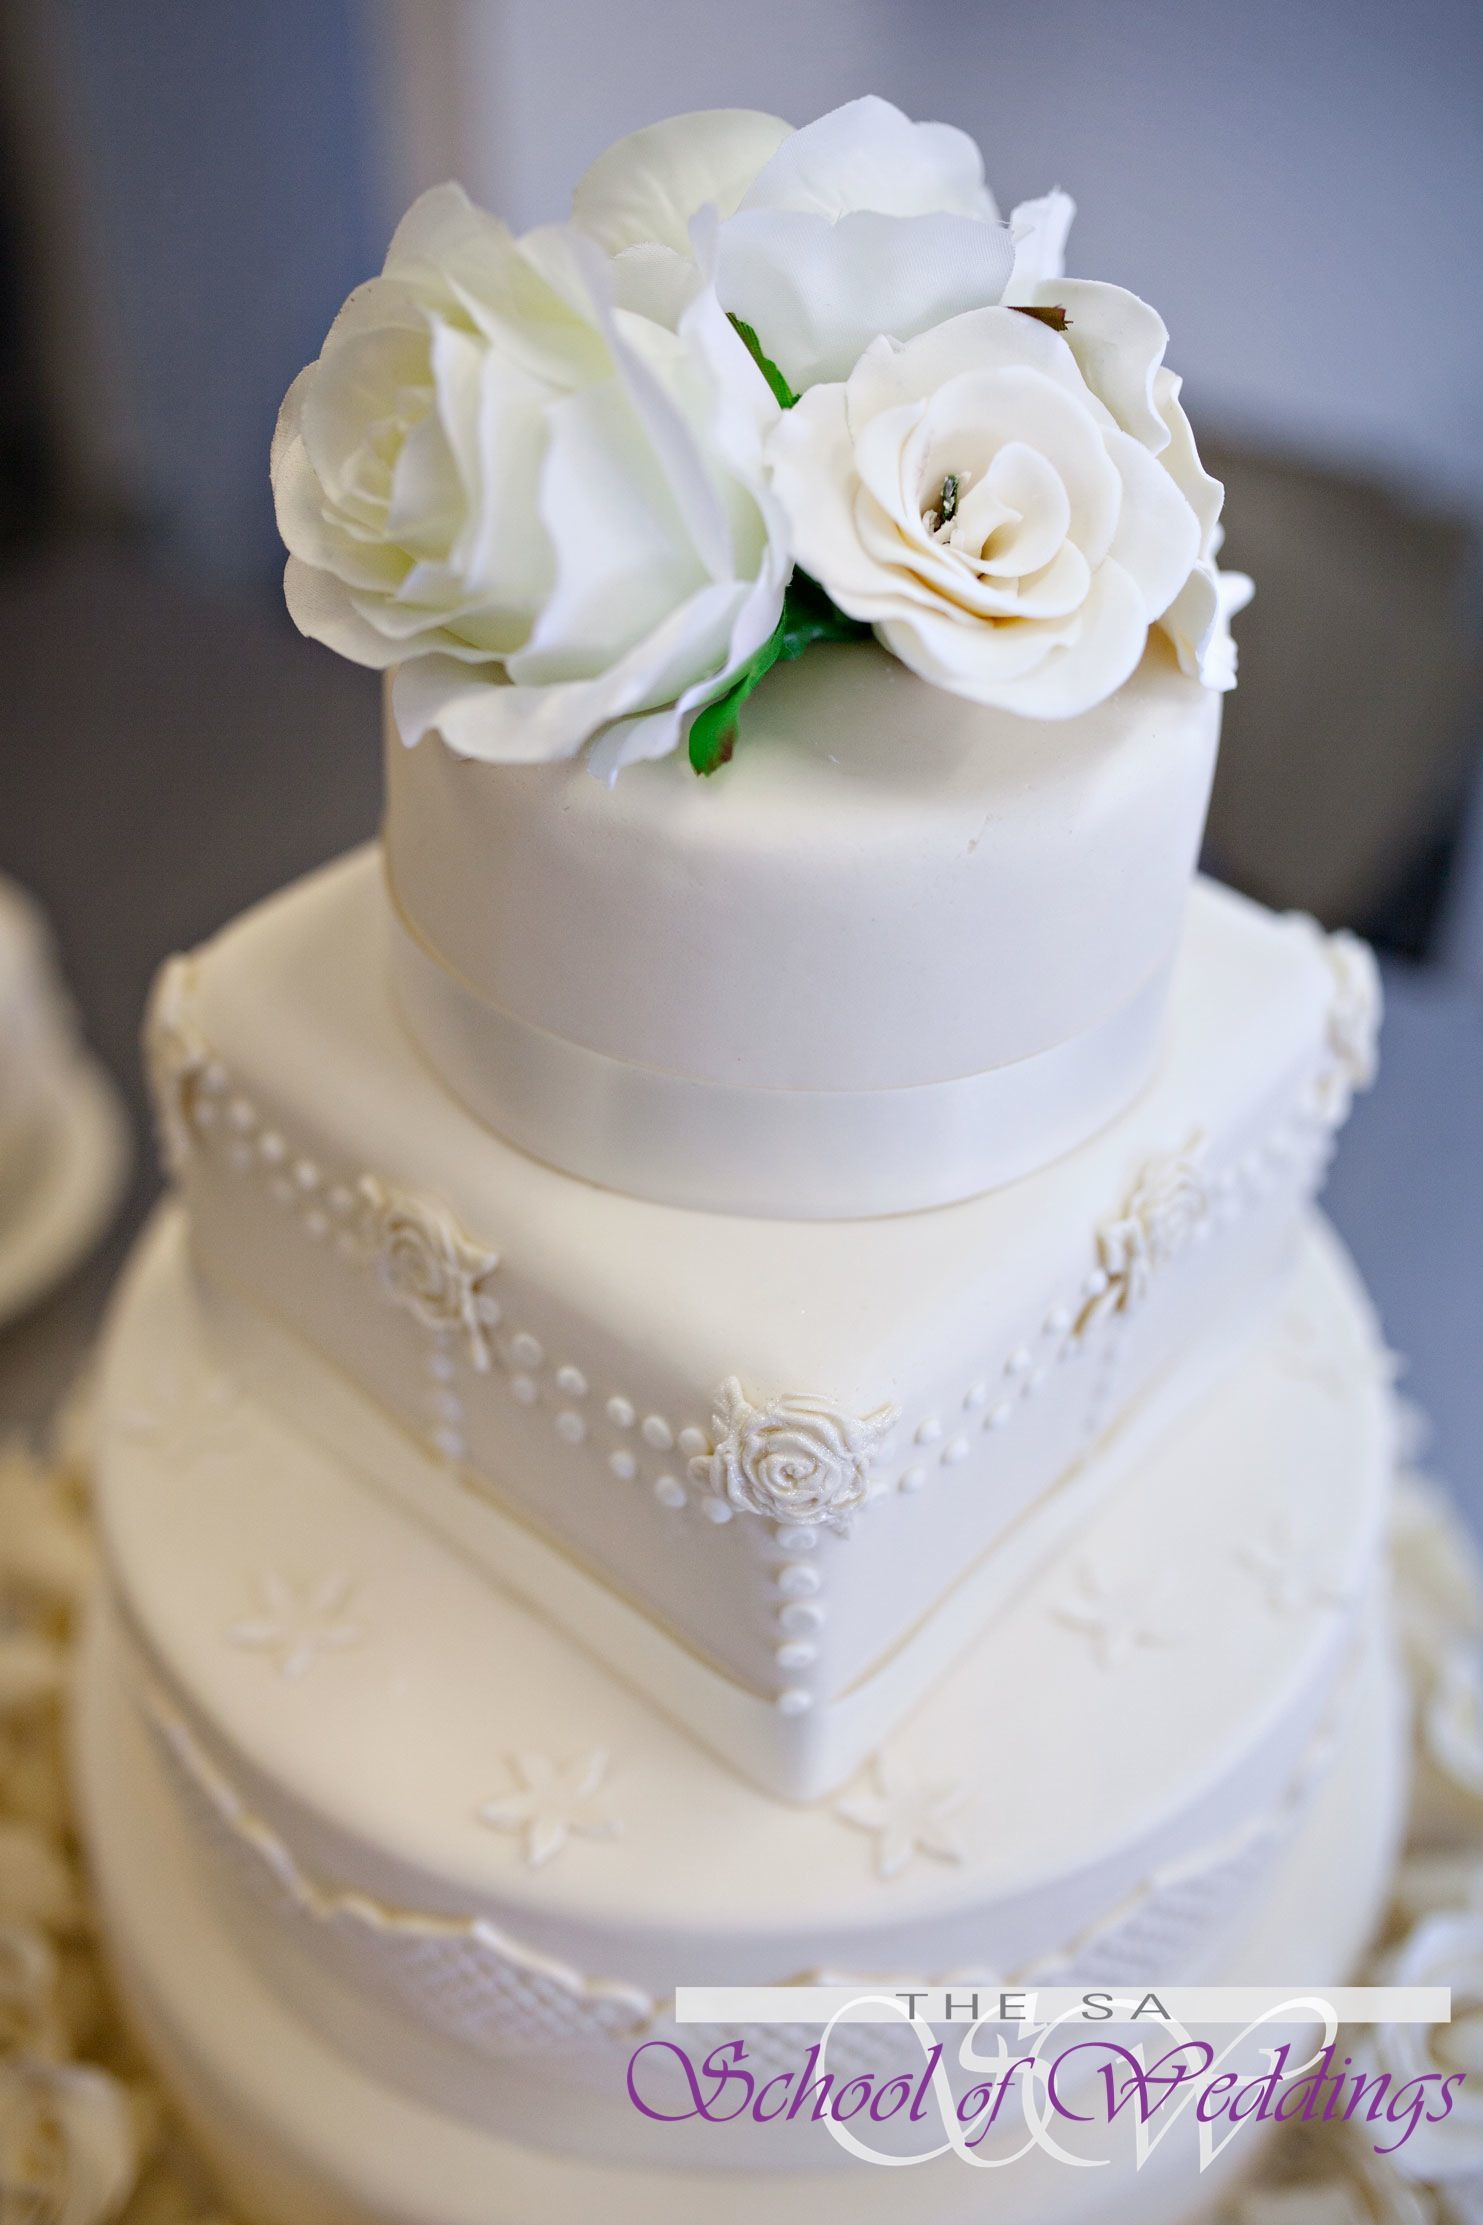 Classic White Wedding Cake www.saschoolofweddings.co.za | Wedding ...